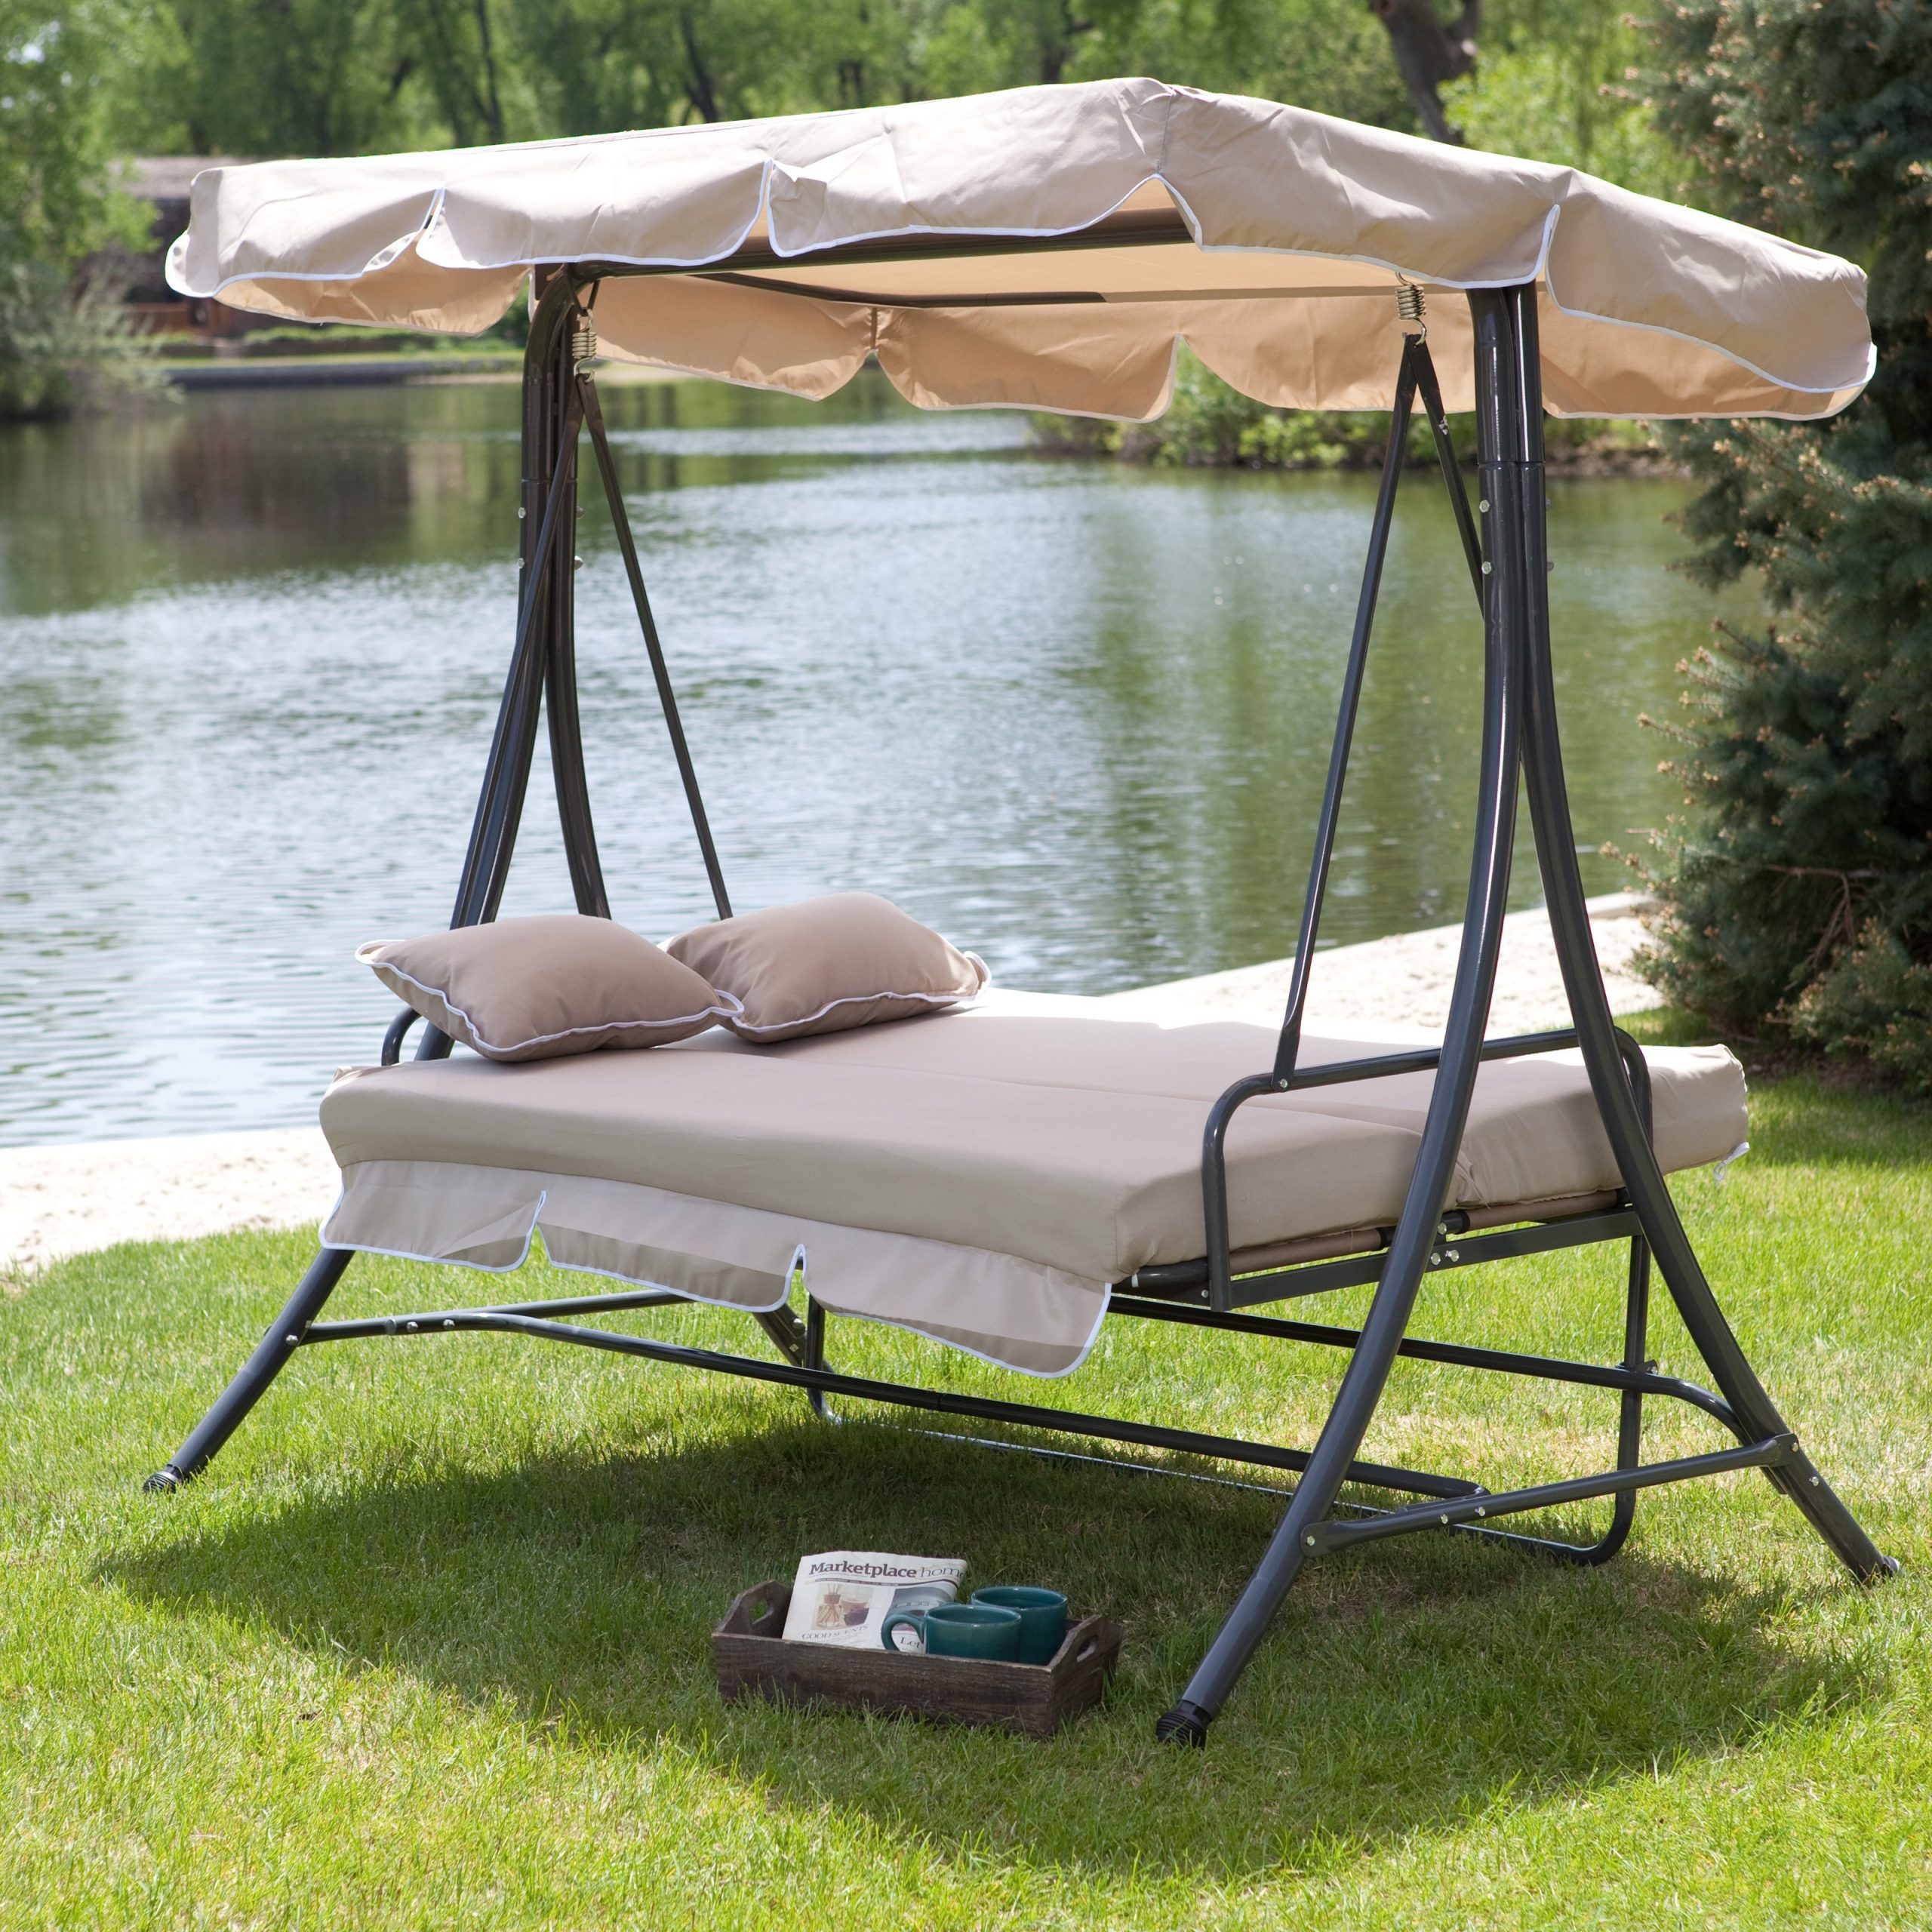 Hammock Patio Backyard Outdoor Swing Hanging Chair With Two Inside Canopy Patio Porch Swing With Stand (View 11 of 25)